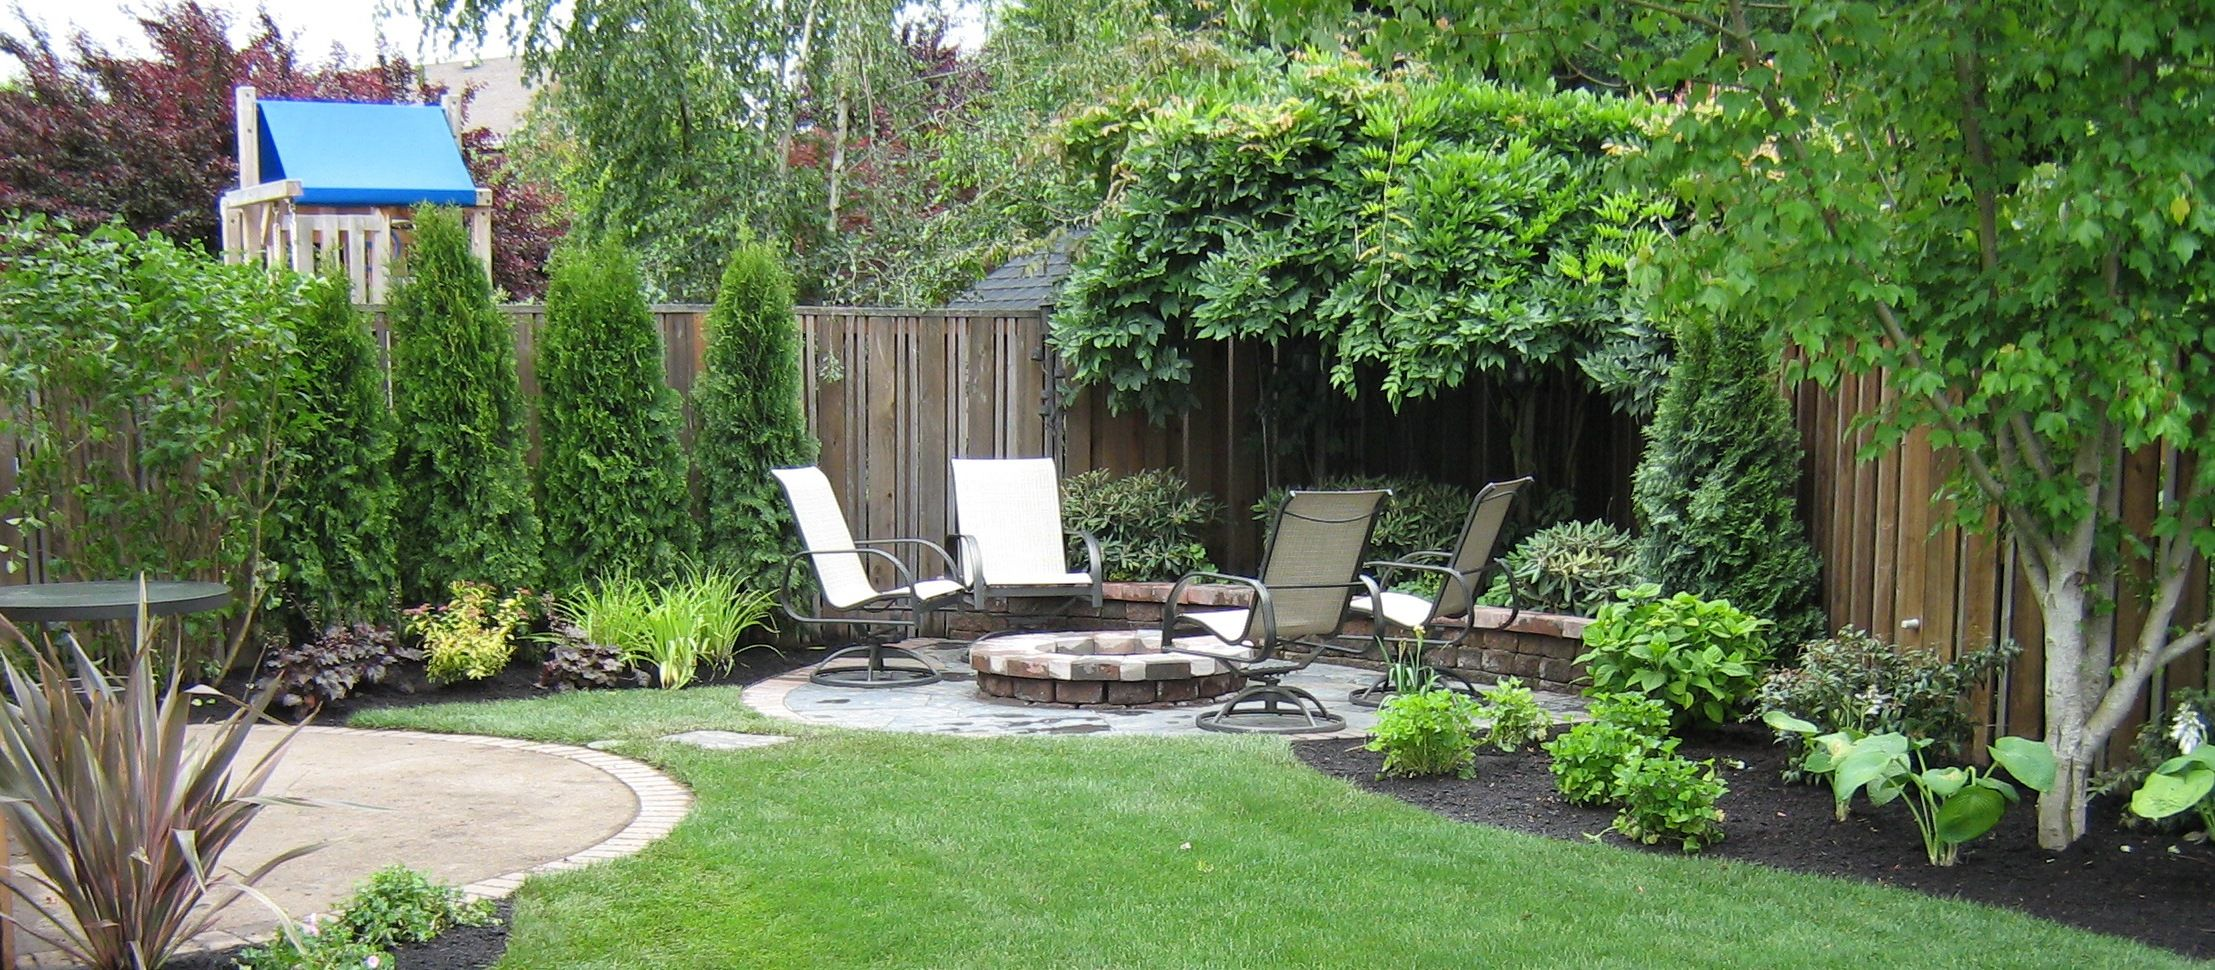 Small backyard landscaping ideas photos garden design for Tiny garden design